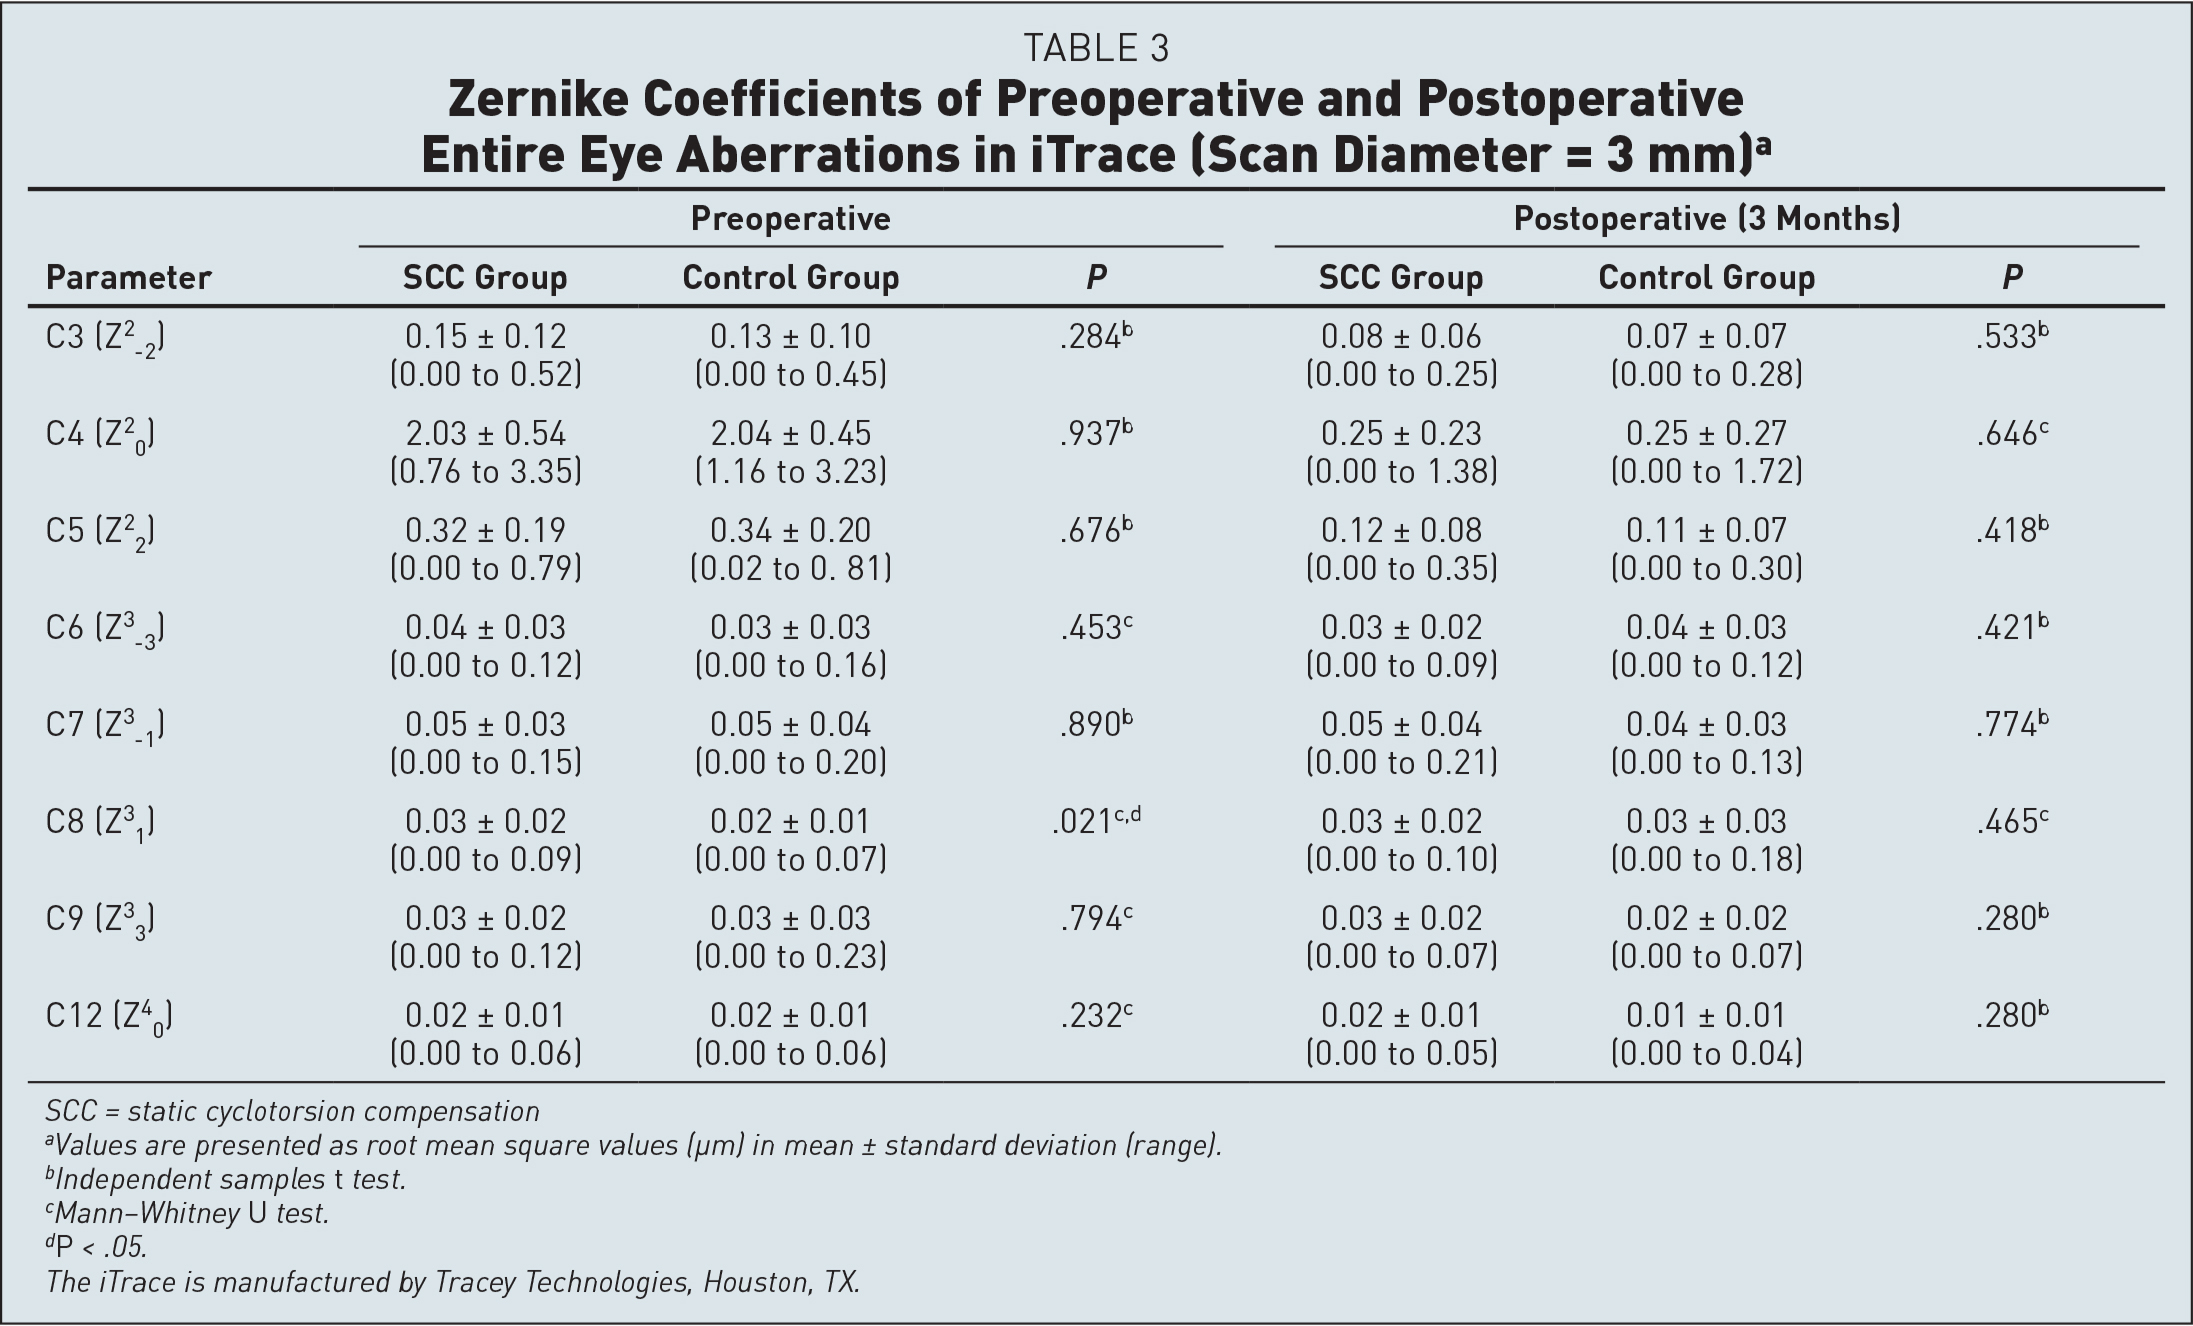 Zernike Coefficients of Preoperative and Postoperative Entire Eye Aberrations in iTrace (Scan Diameter = 3 mm)a